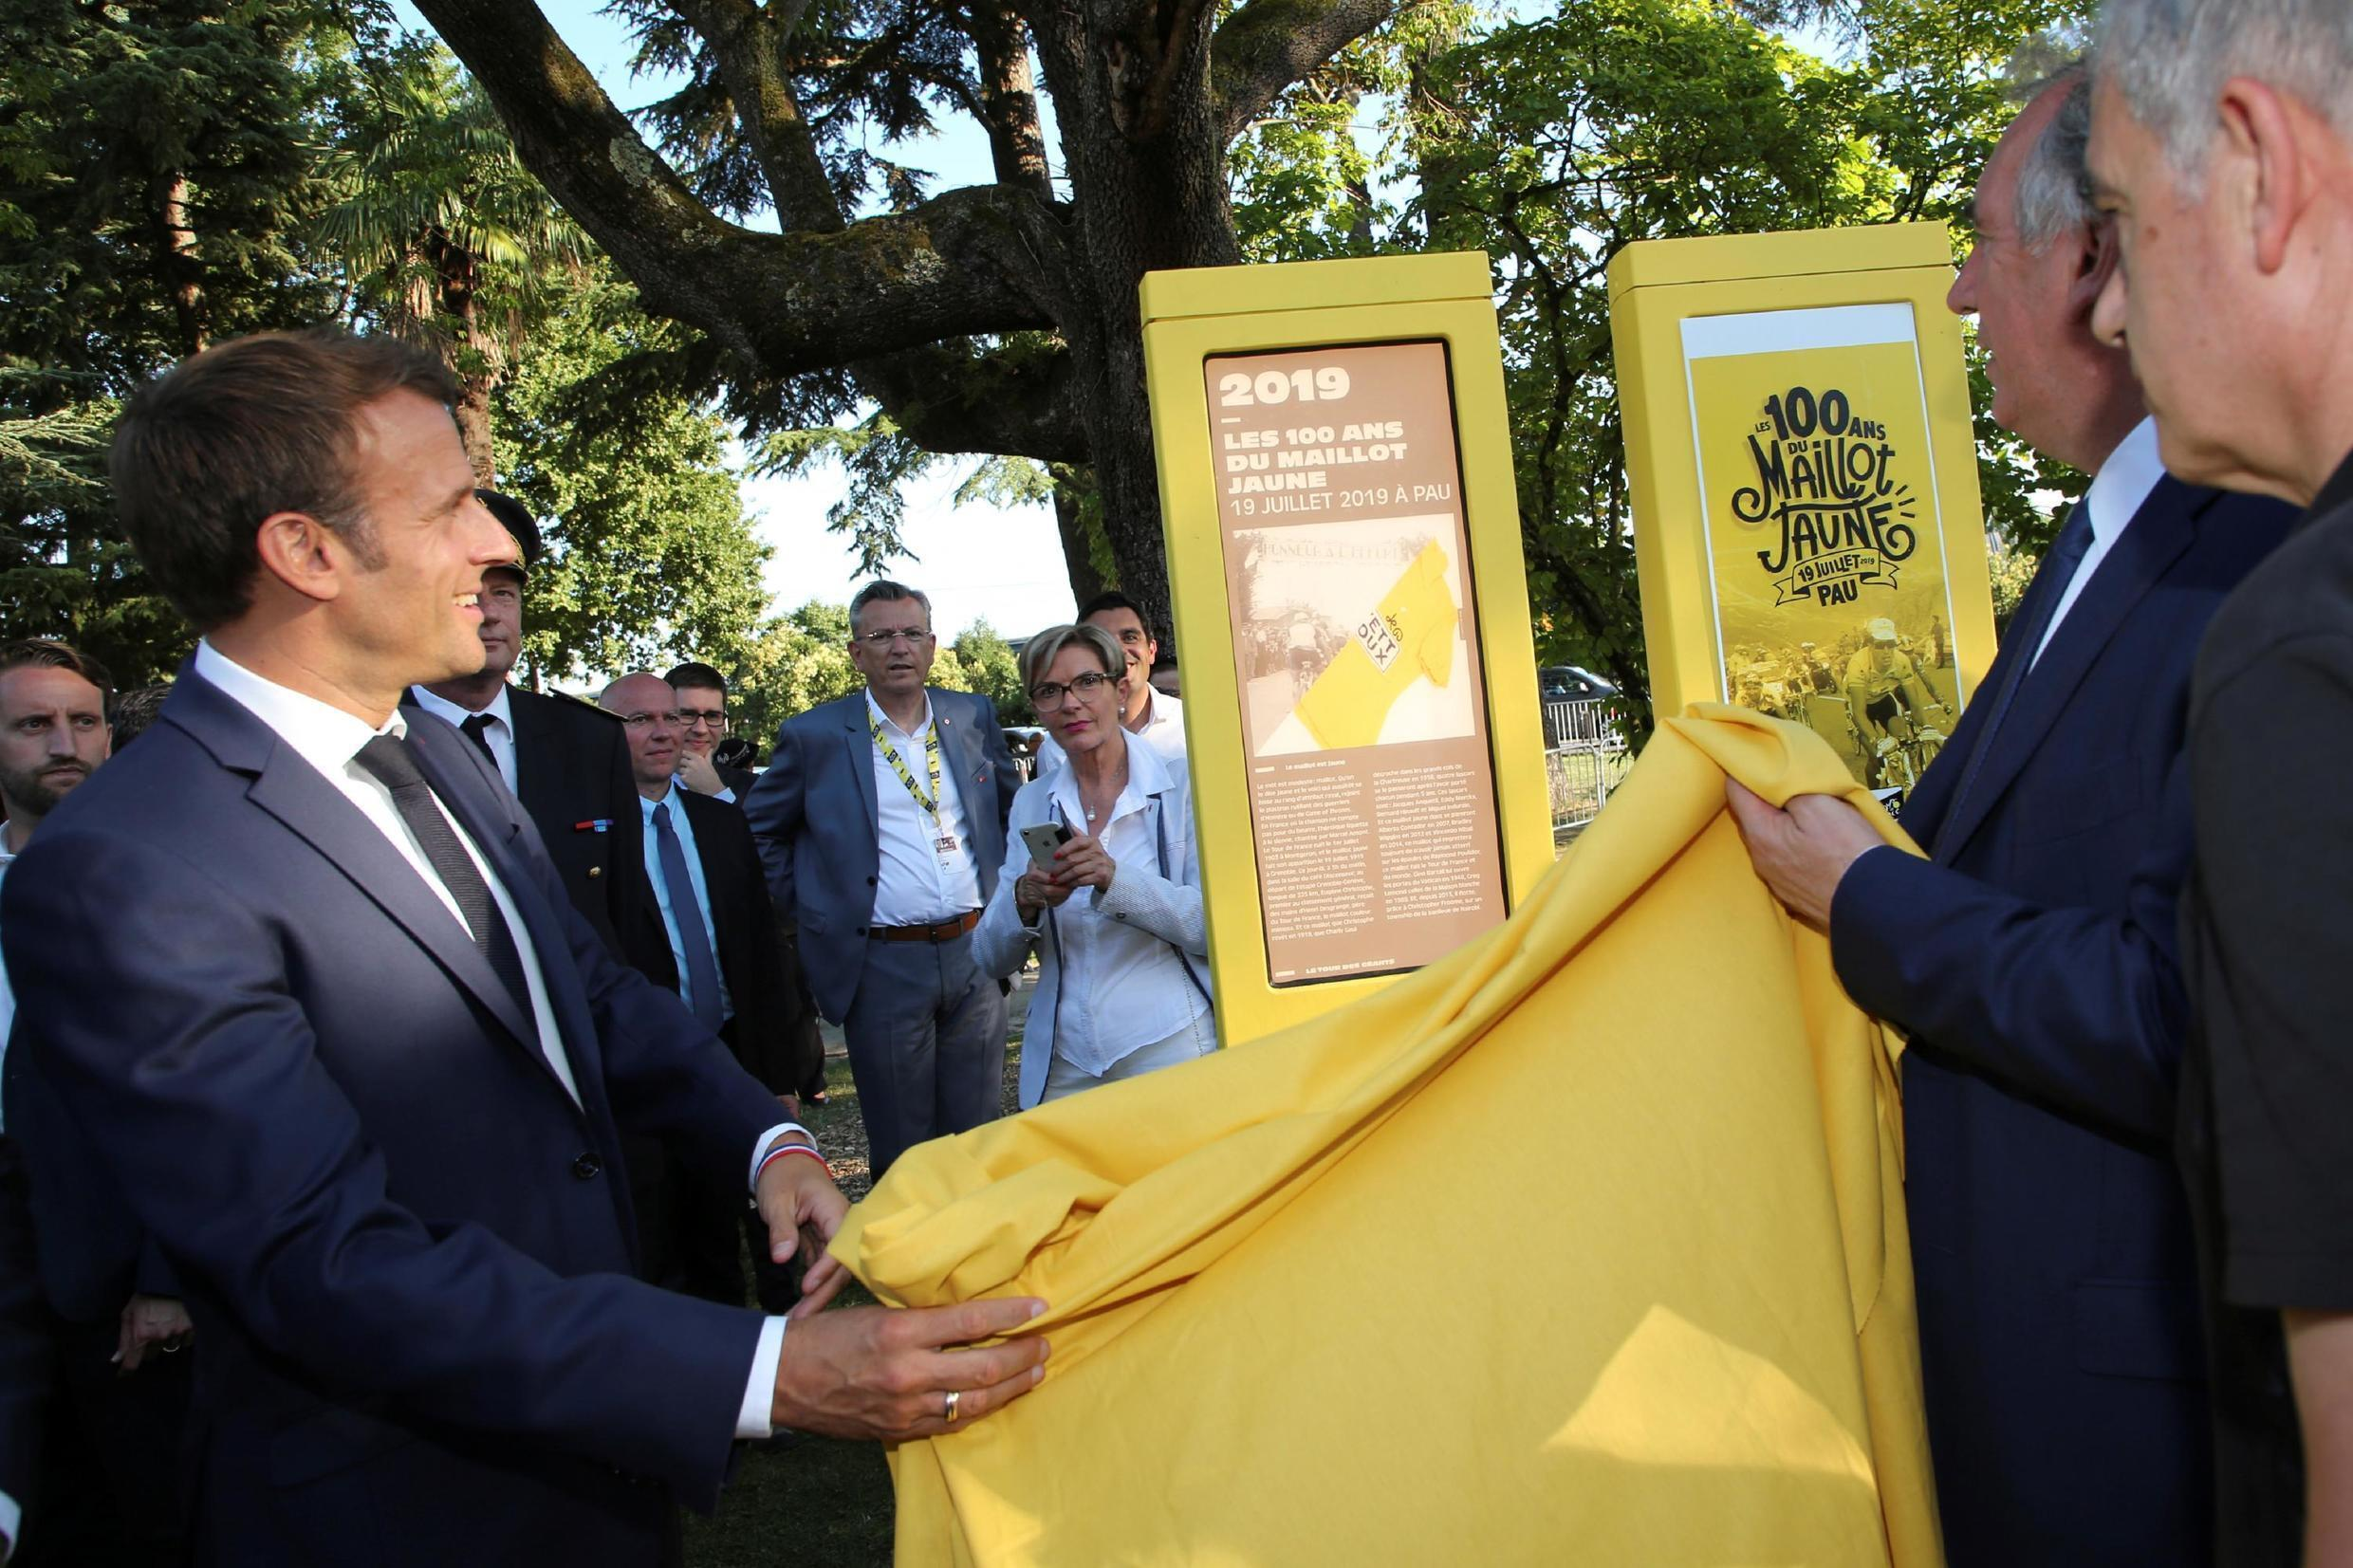 French President Emmanuel Macron unveils a plaque with the mayor of Pau, Francois Bayrou, to mark the 100th anniversary of the Tour de France yellow jersey, 19 July 2019.